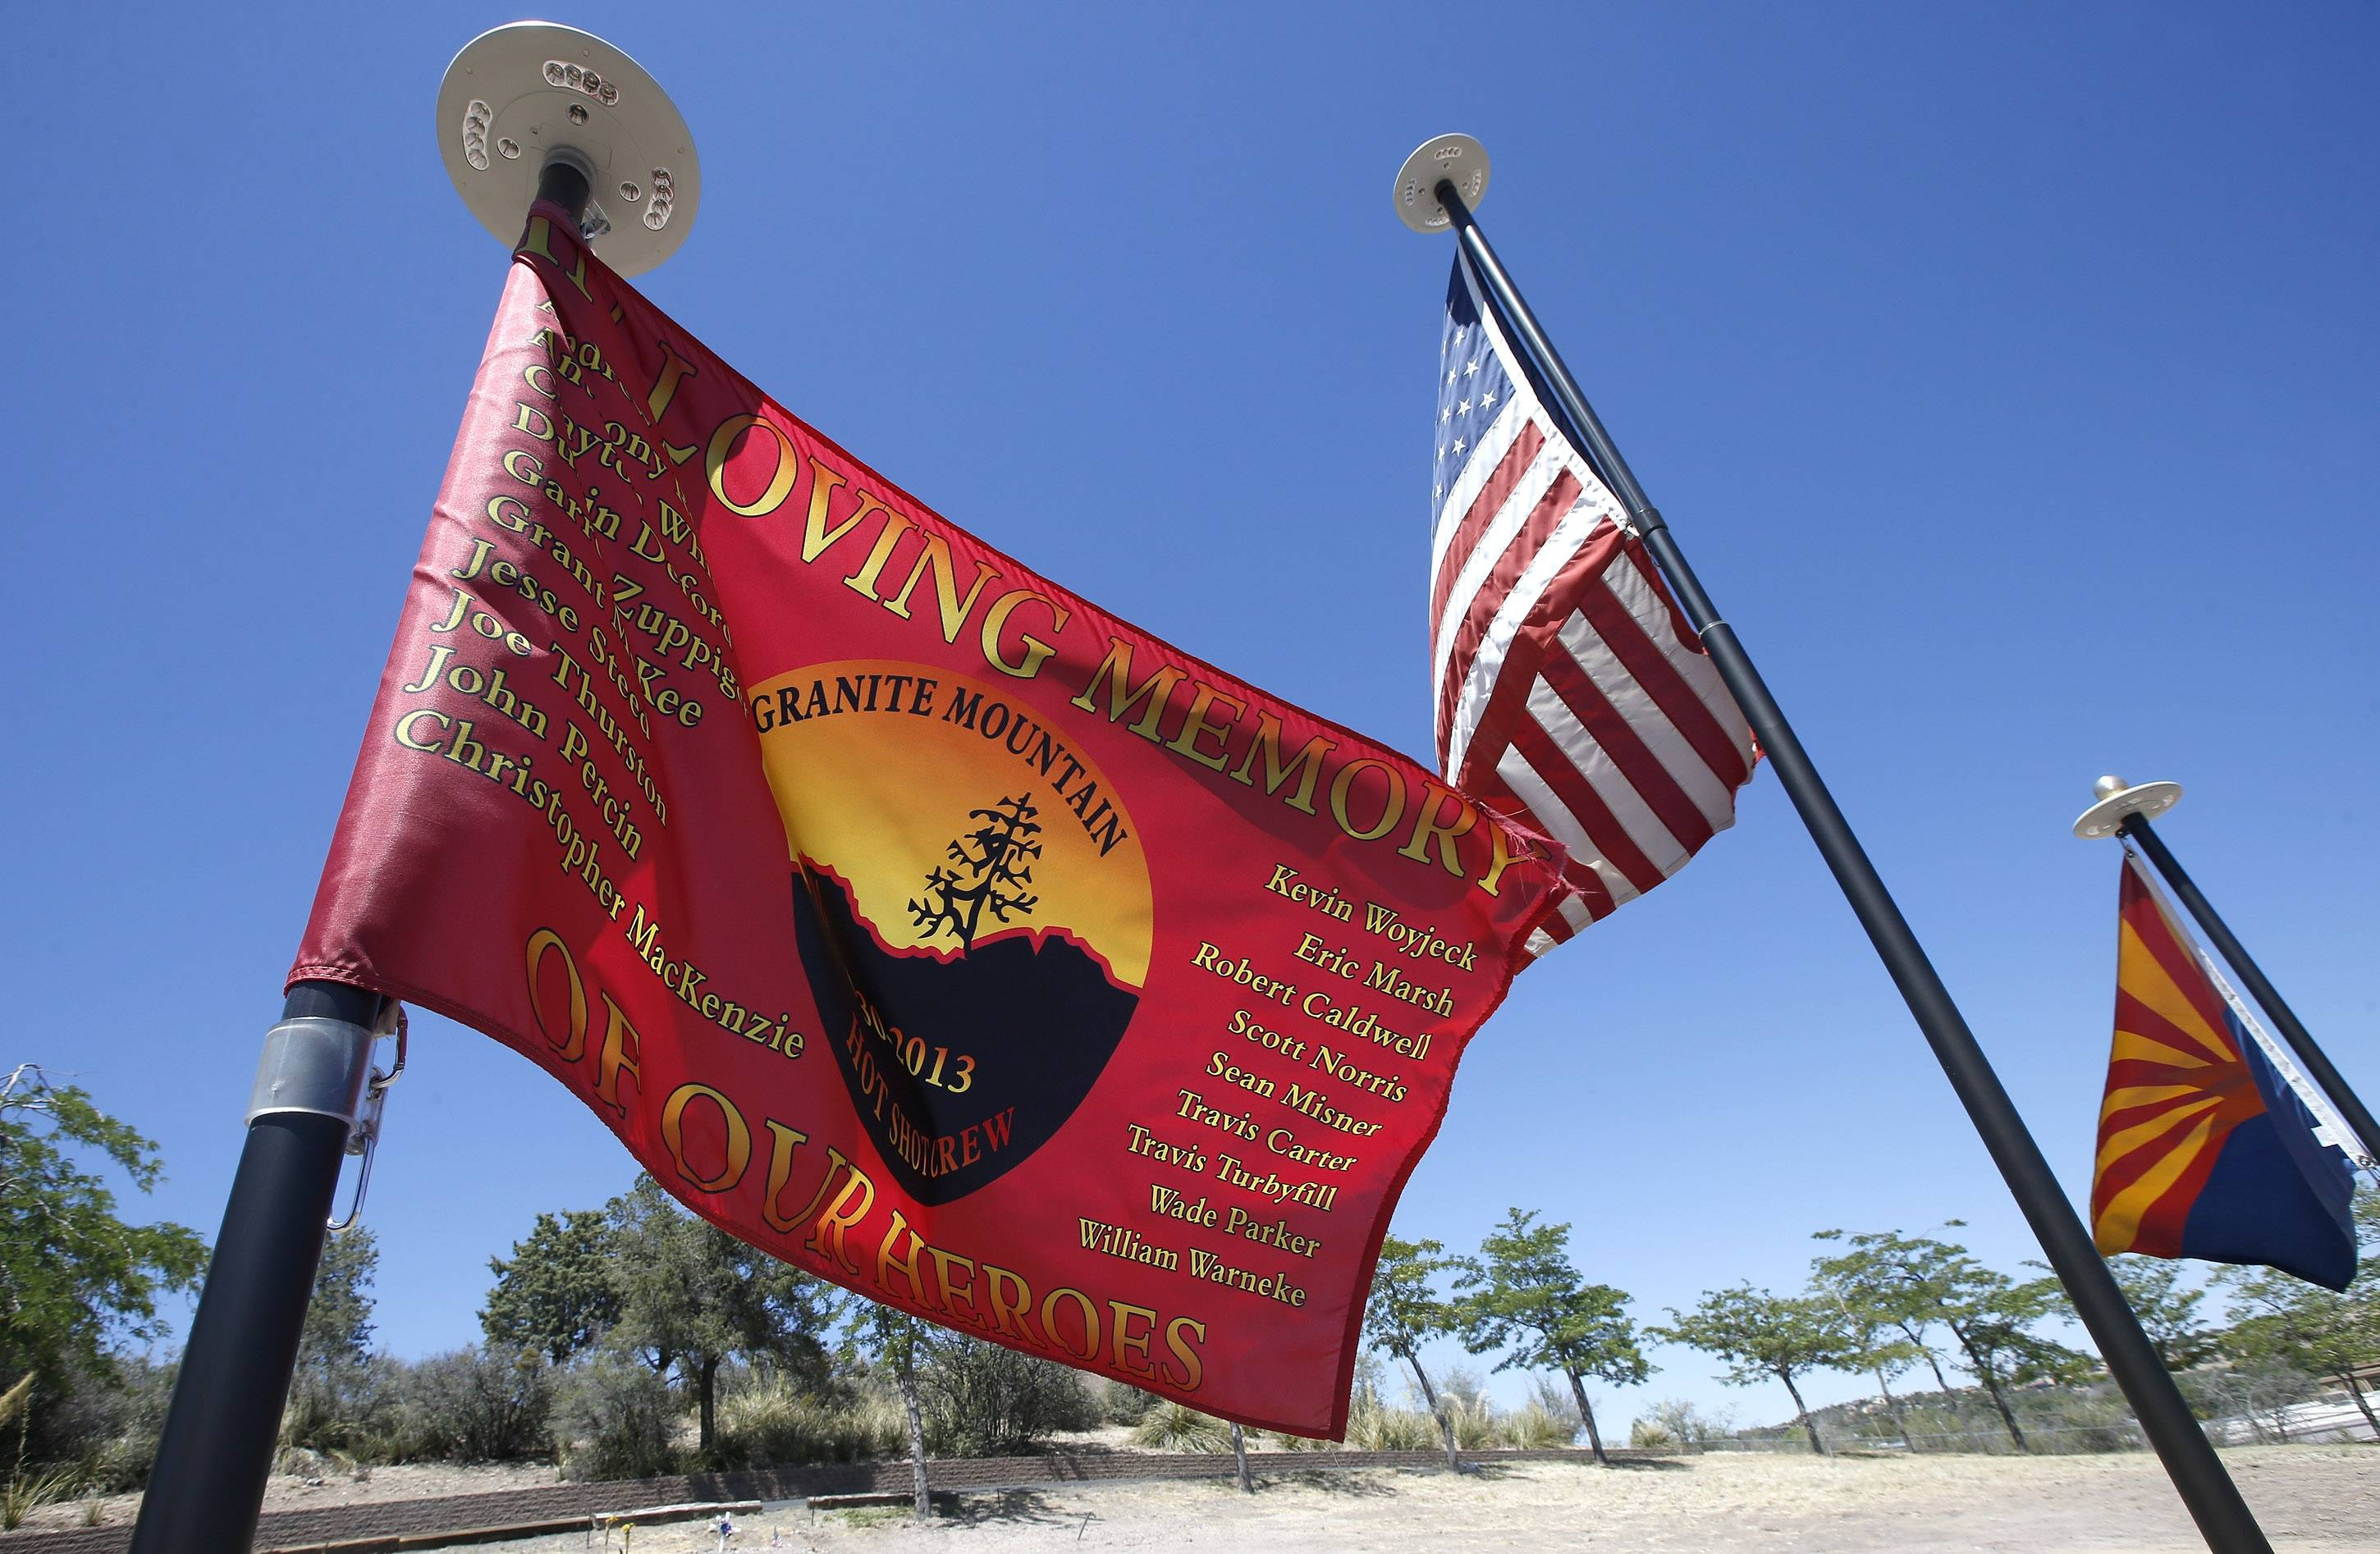 Flags fly at a memorial gravesite at Pioneer Cemetery where the 19 Granite Mountain Hotshots are honored nearly a year after all were killed fighting a wildfire on Tuesday, June 24, 2014, in Prescott, Ariz.